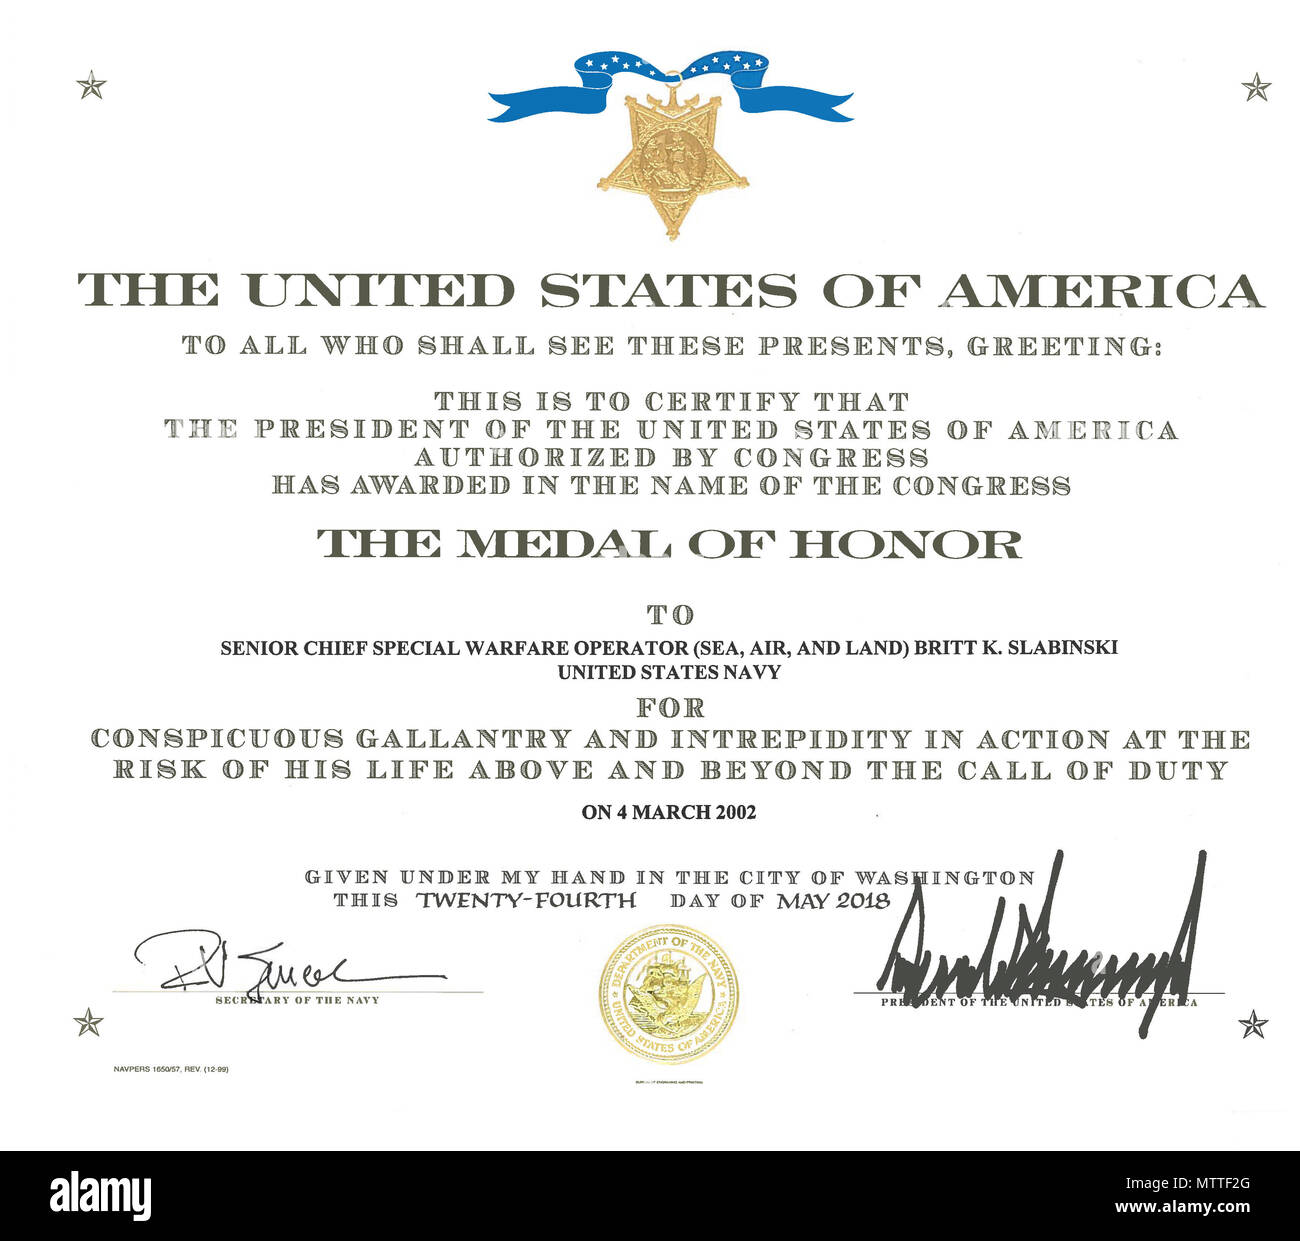 180525-N-N0101-315 WASHINGTON (May 25, 2018) The Medal of Honor certificate of retired Master Chief Special Warfare Operator (SEAL) Britt Slabinski. President Donald J. Trump presented the Medal of Honor to Slabinski during a ceremony at the White House in Washington, D.C. Slabinski received the Medal of Honor for his actions during Operation Anaconda in Afghanistan in March 2002. (U.S. Navy photo/Released) - Stock Image